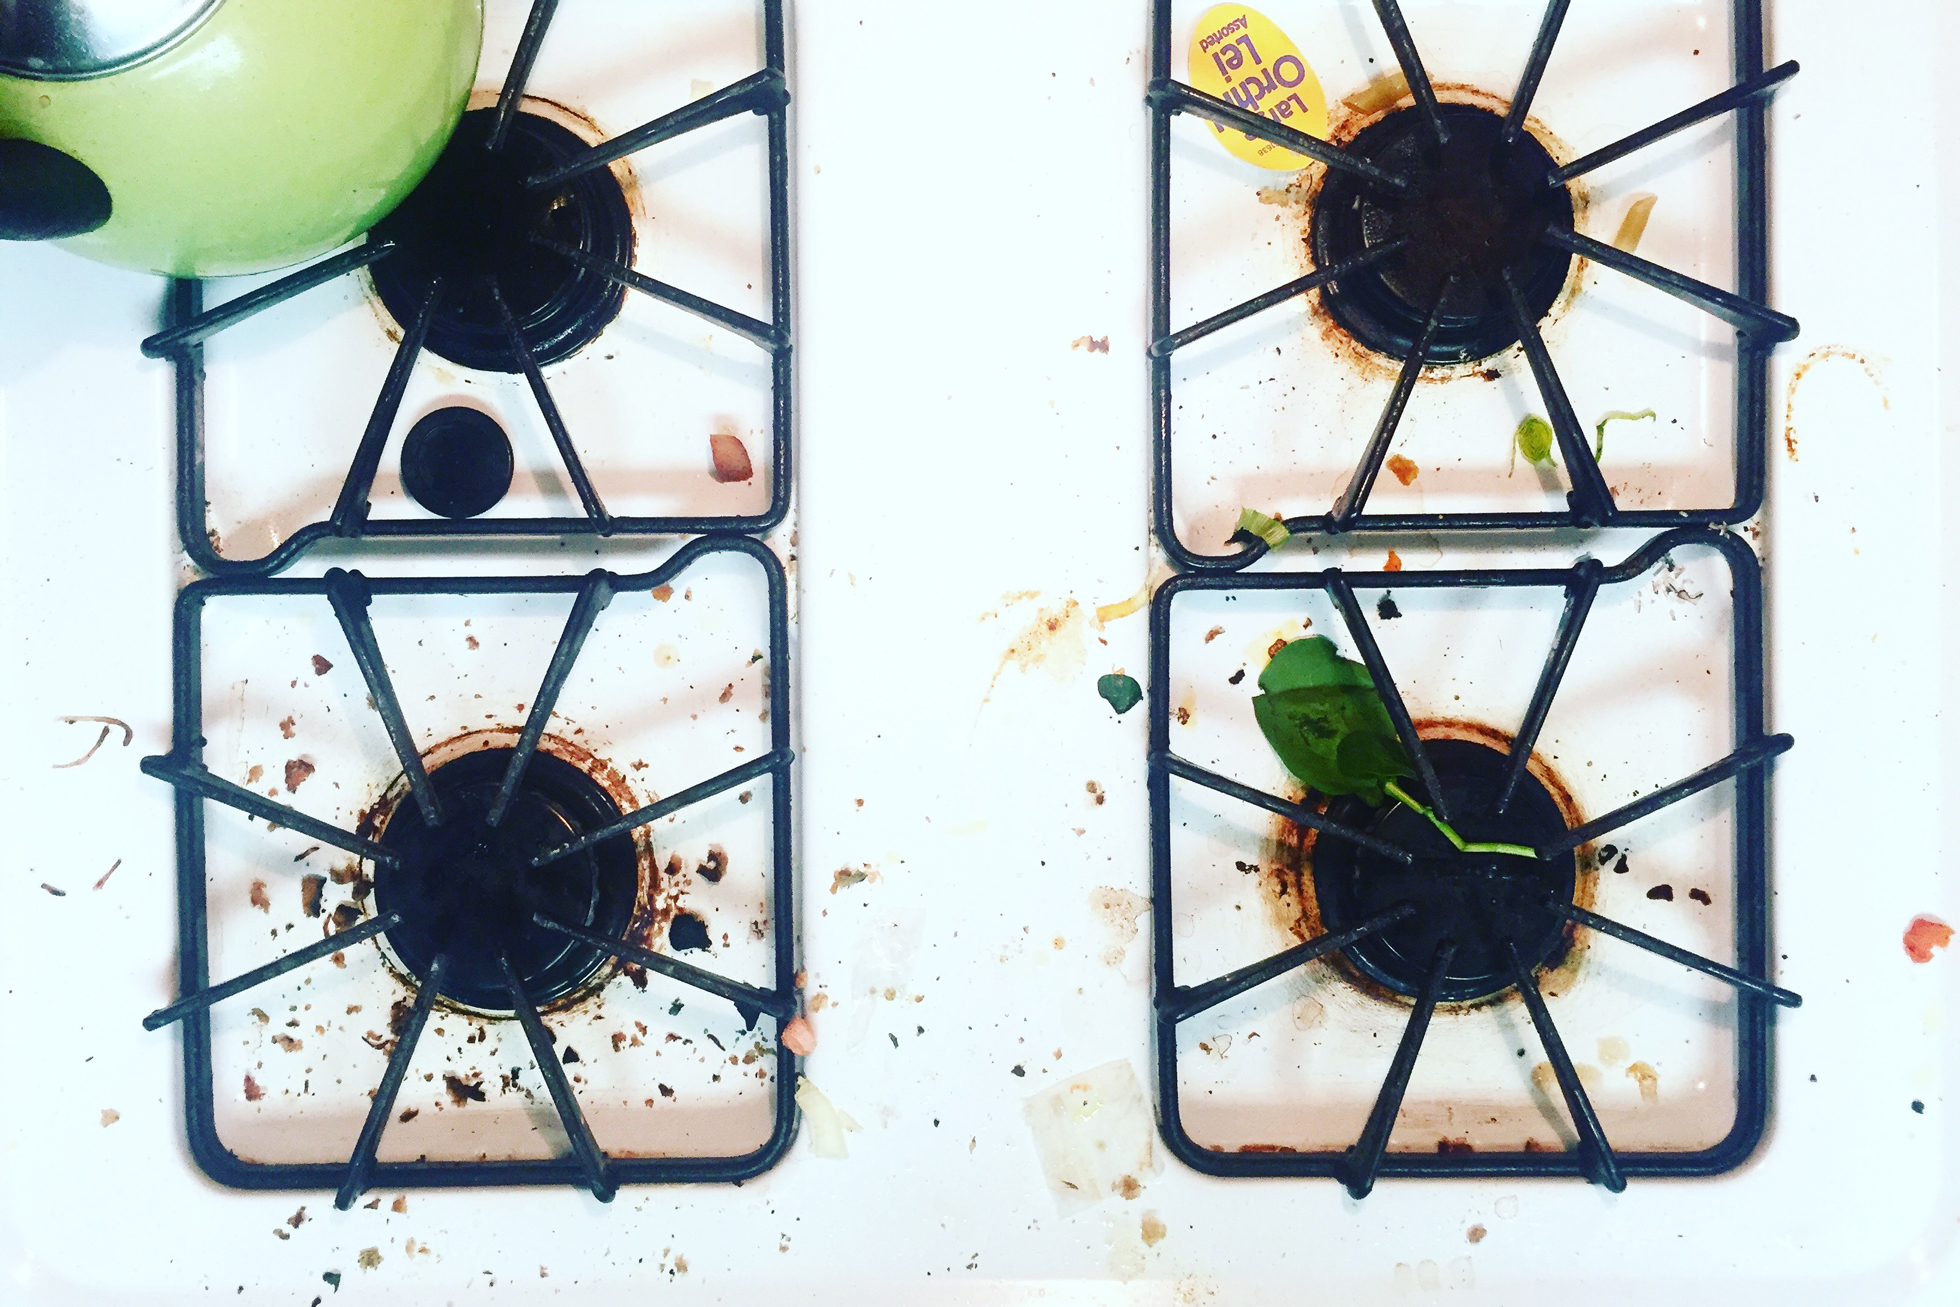 A gas stovetop with food crumbs, green teapot